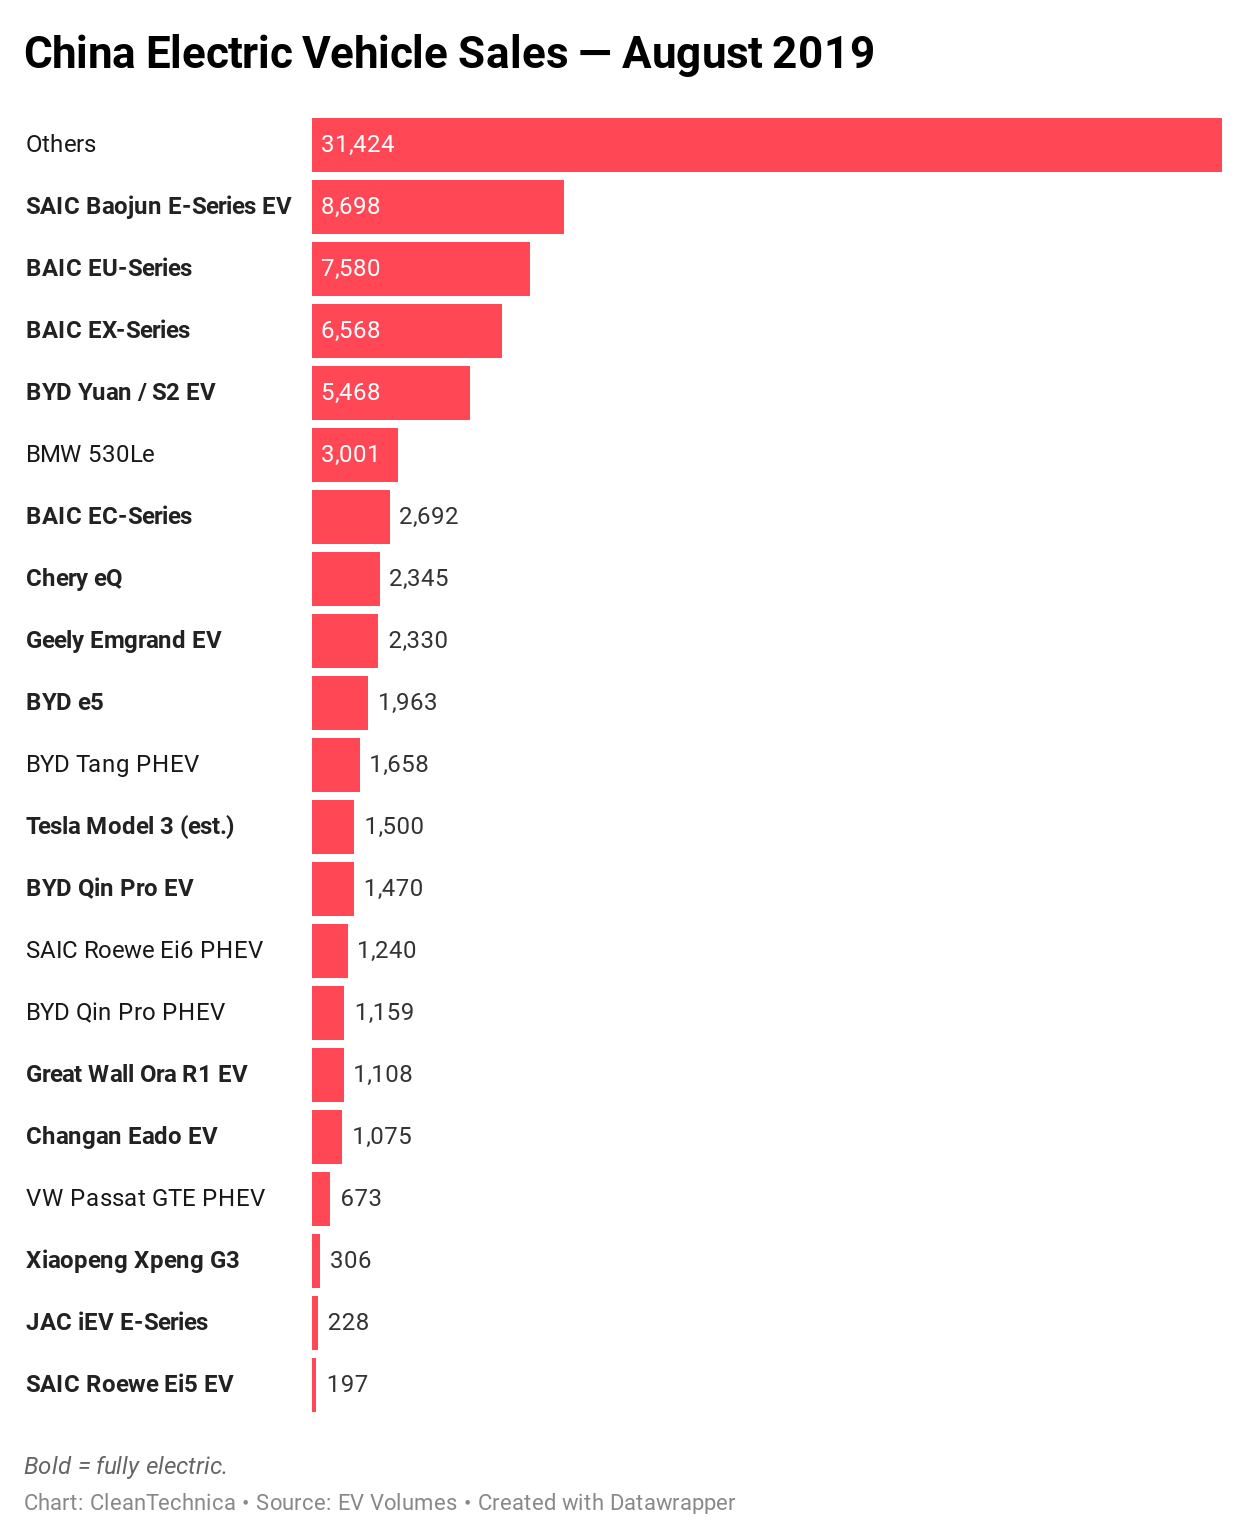 Chart: China Electric Vehicle Sales August 2019